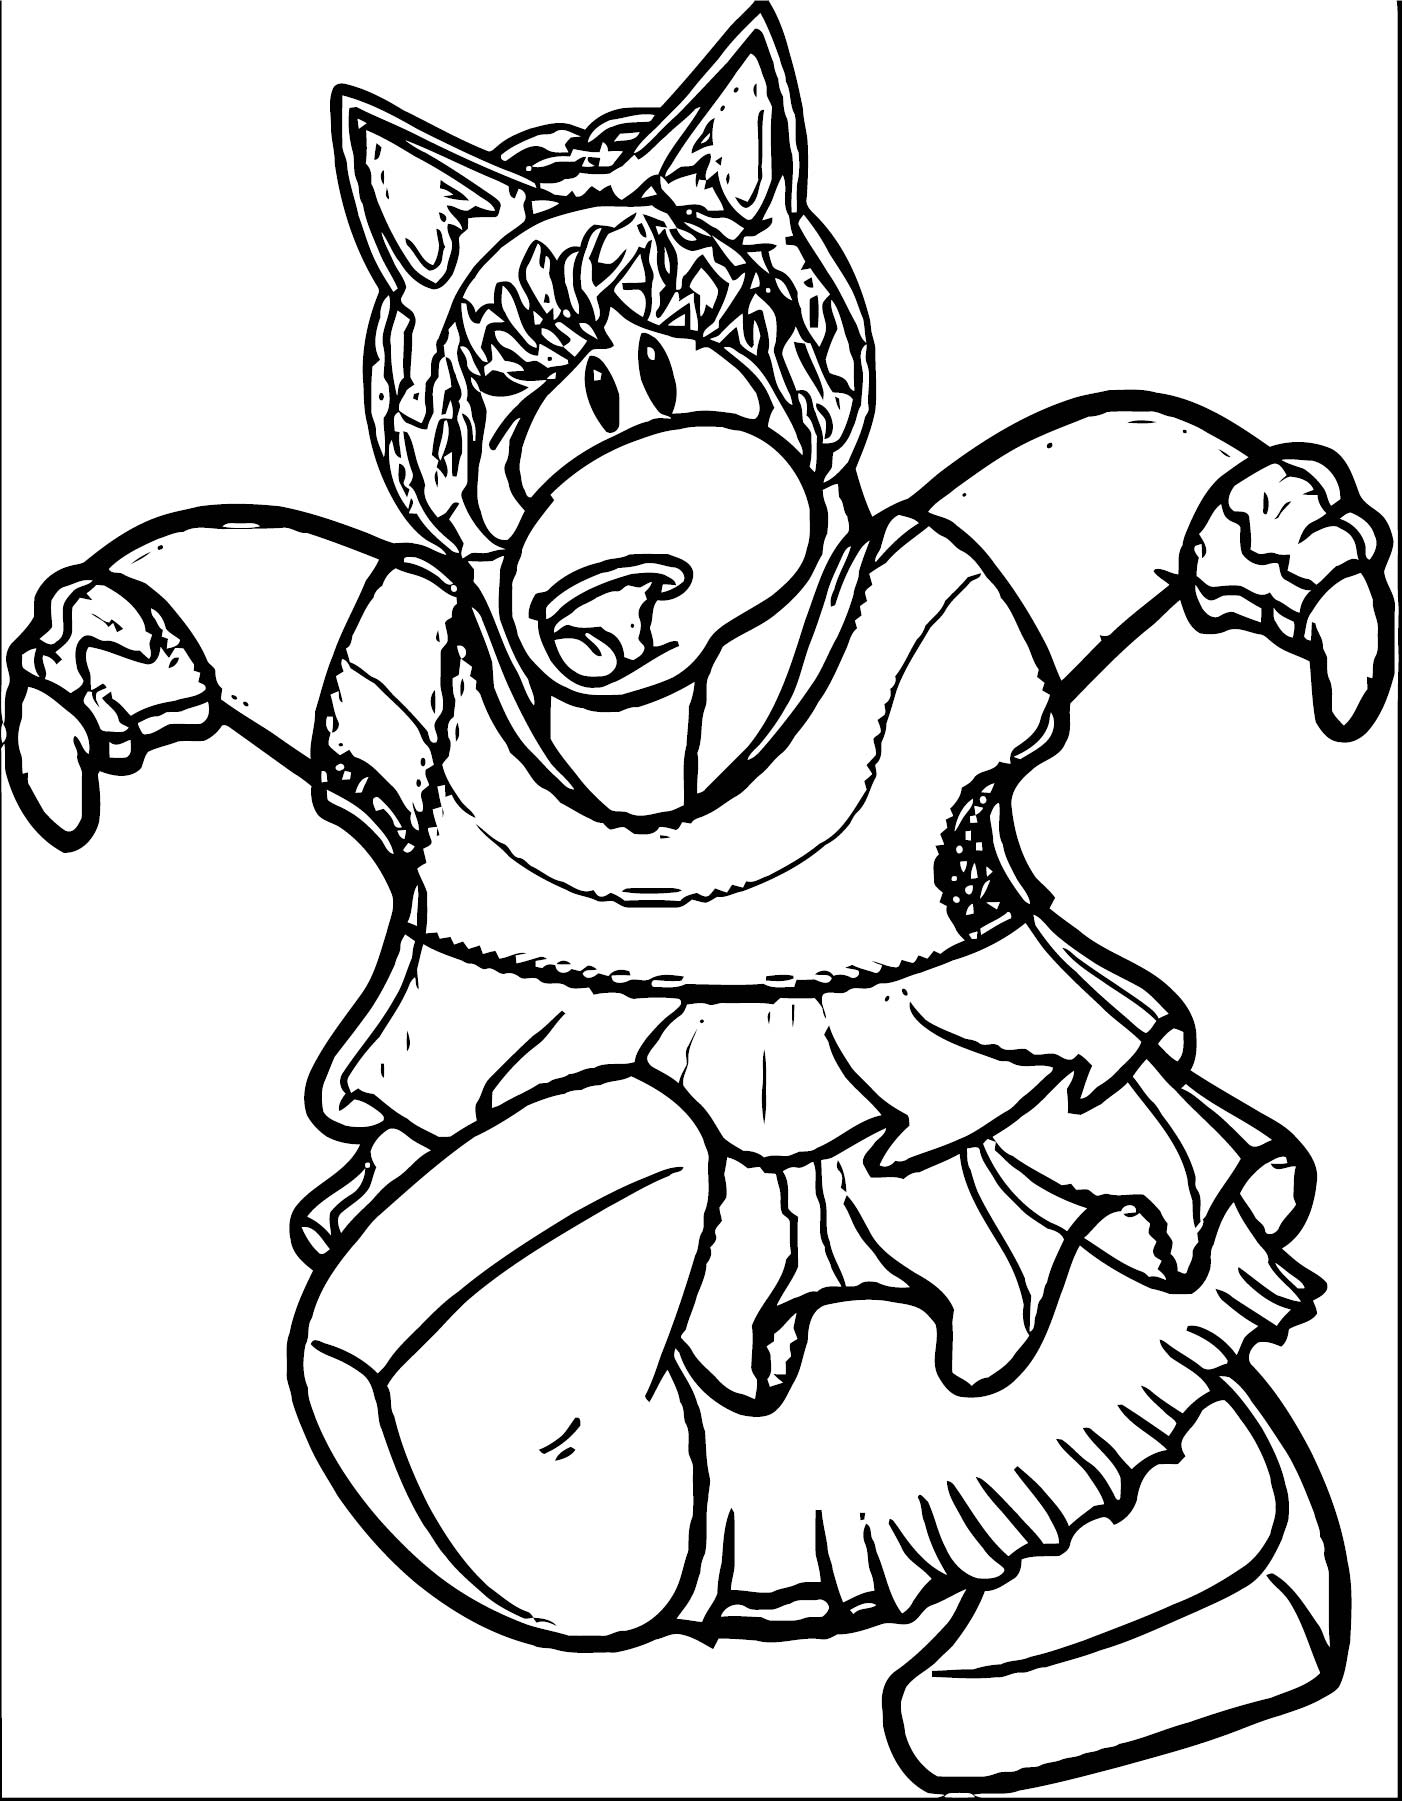 club penguin coloring pages of rockhopper exploration | Club Penguin Catpenguin ClubPenguin 1 Coloring Page ...